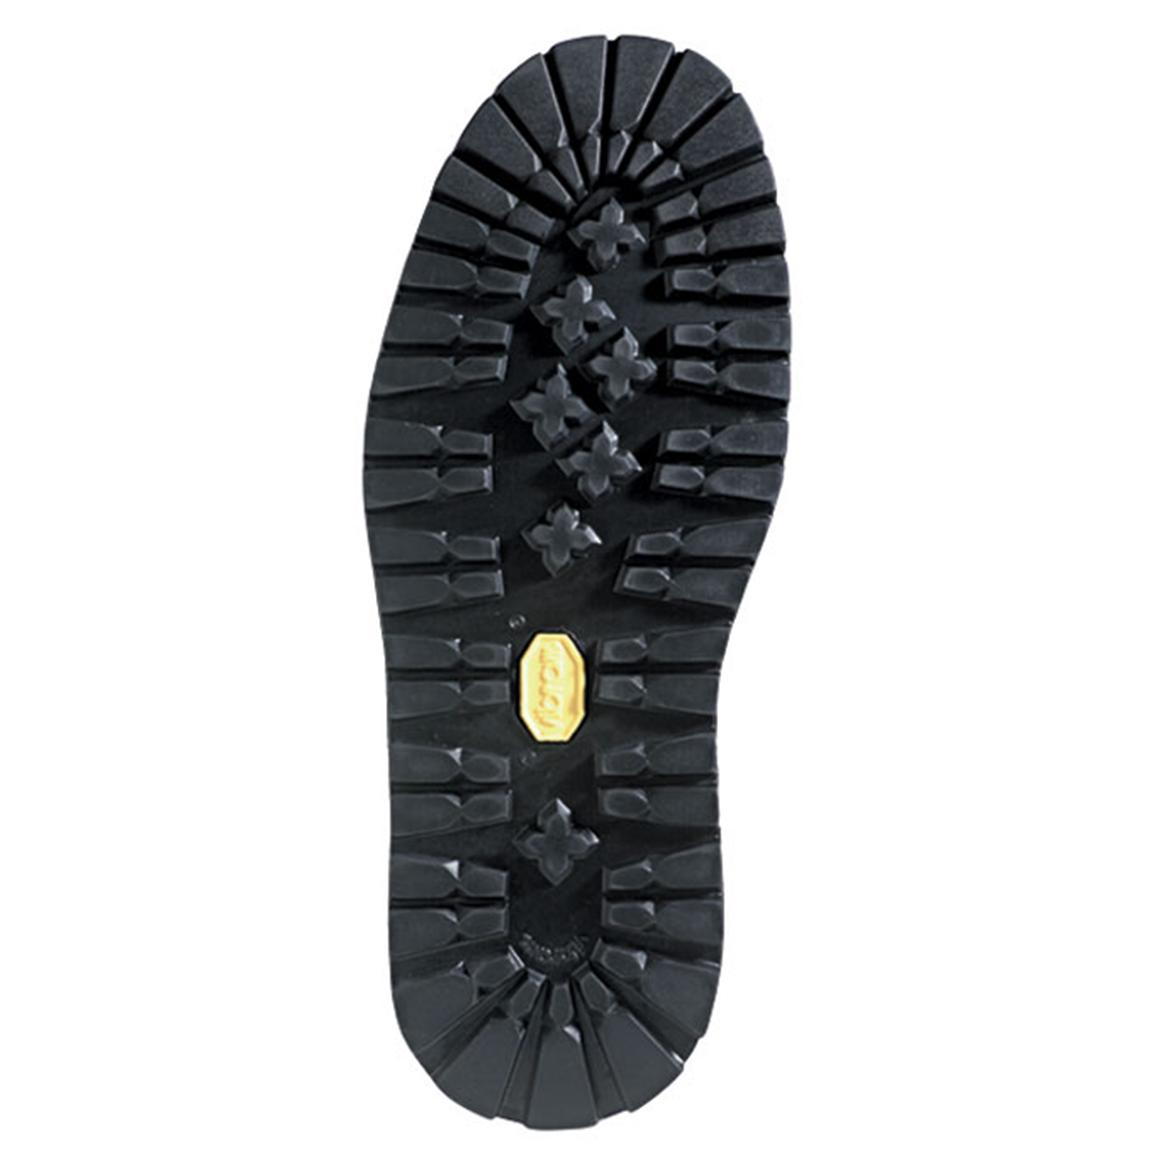 Vibram 148 Kletterlift outsole